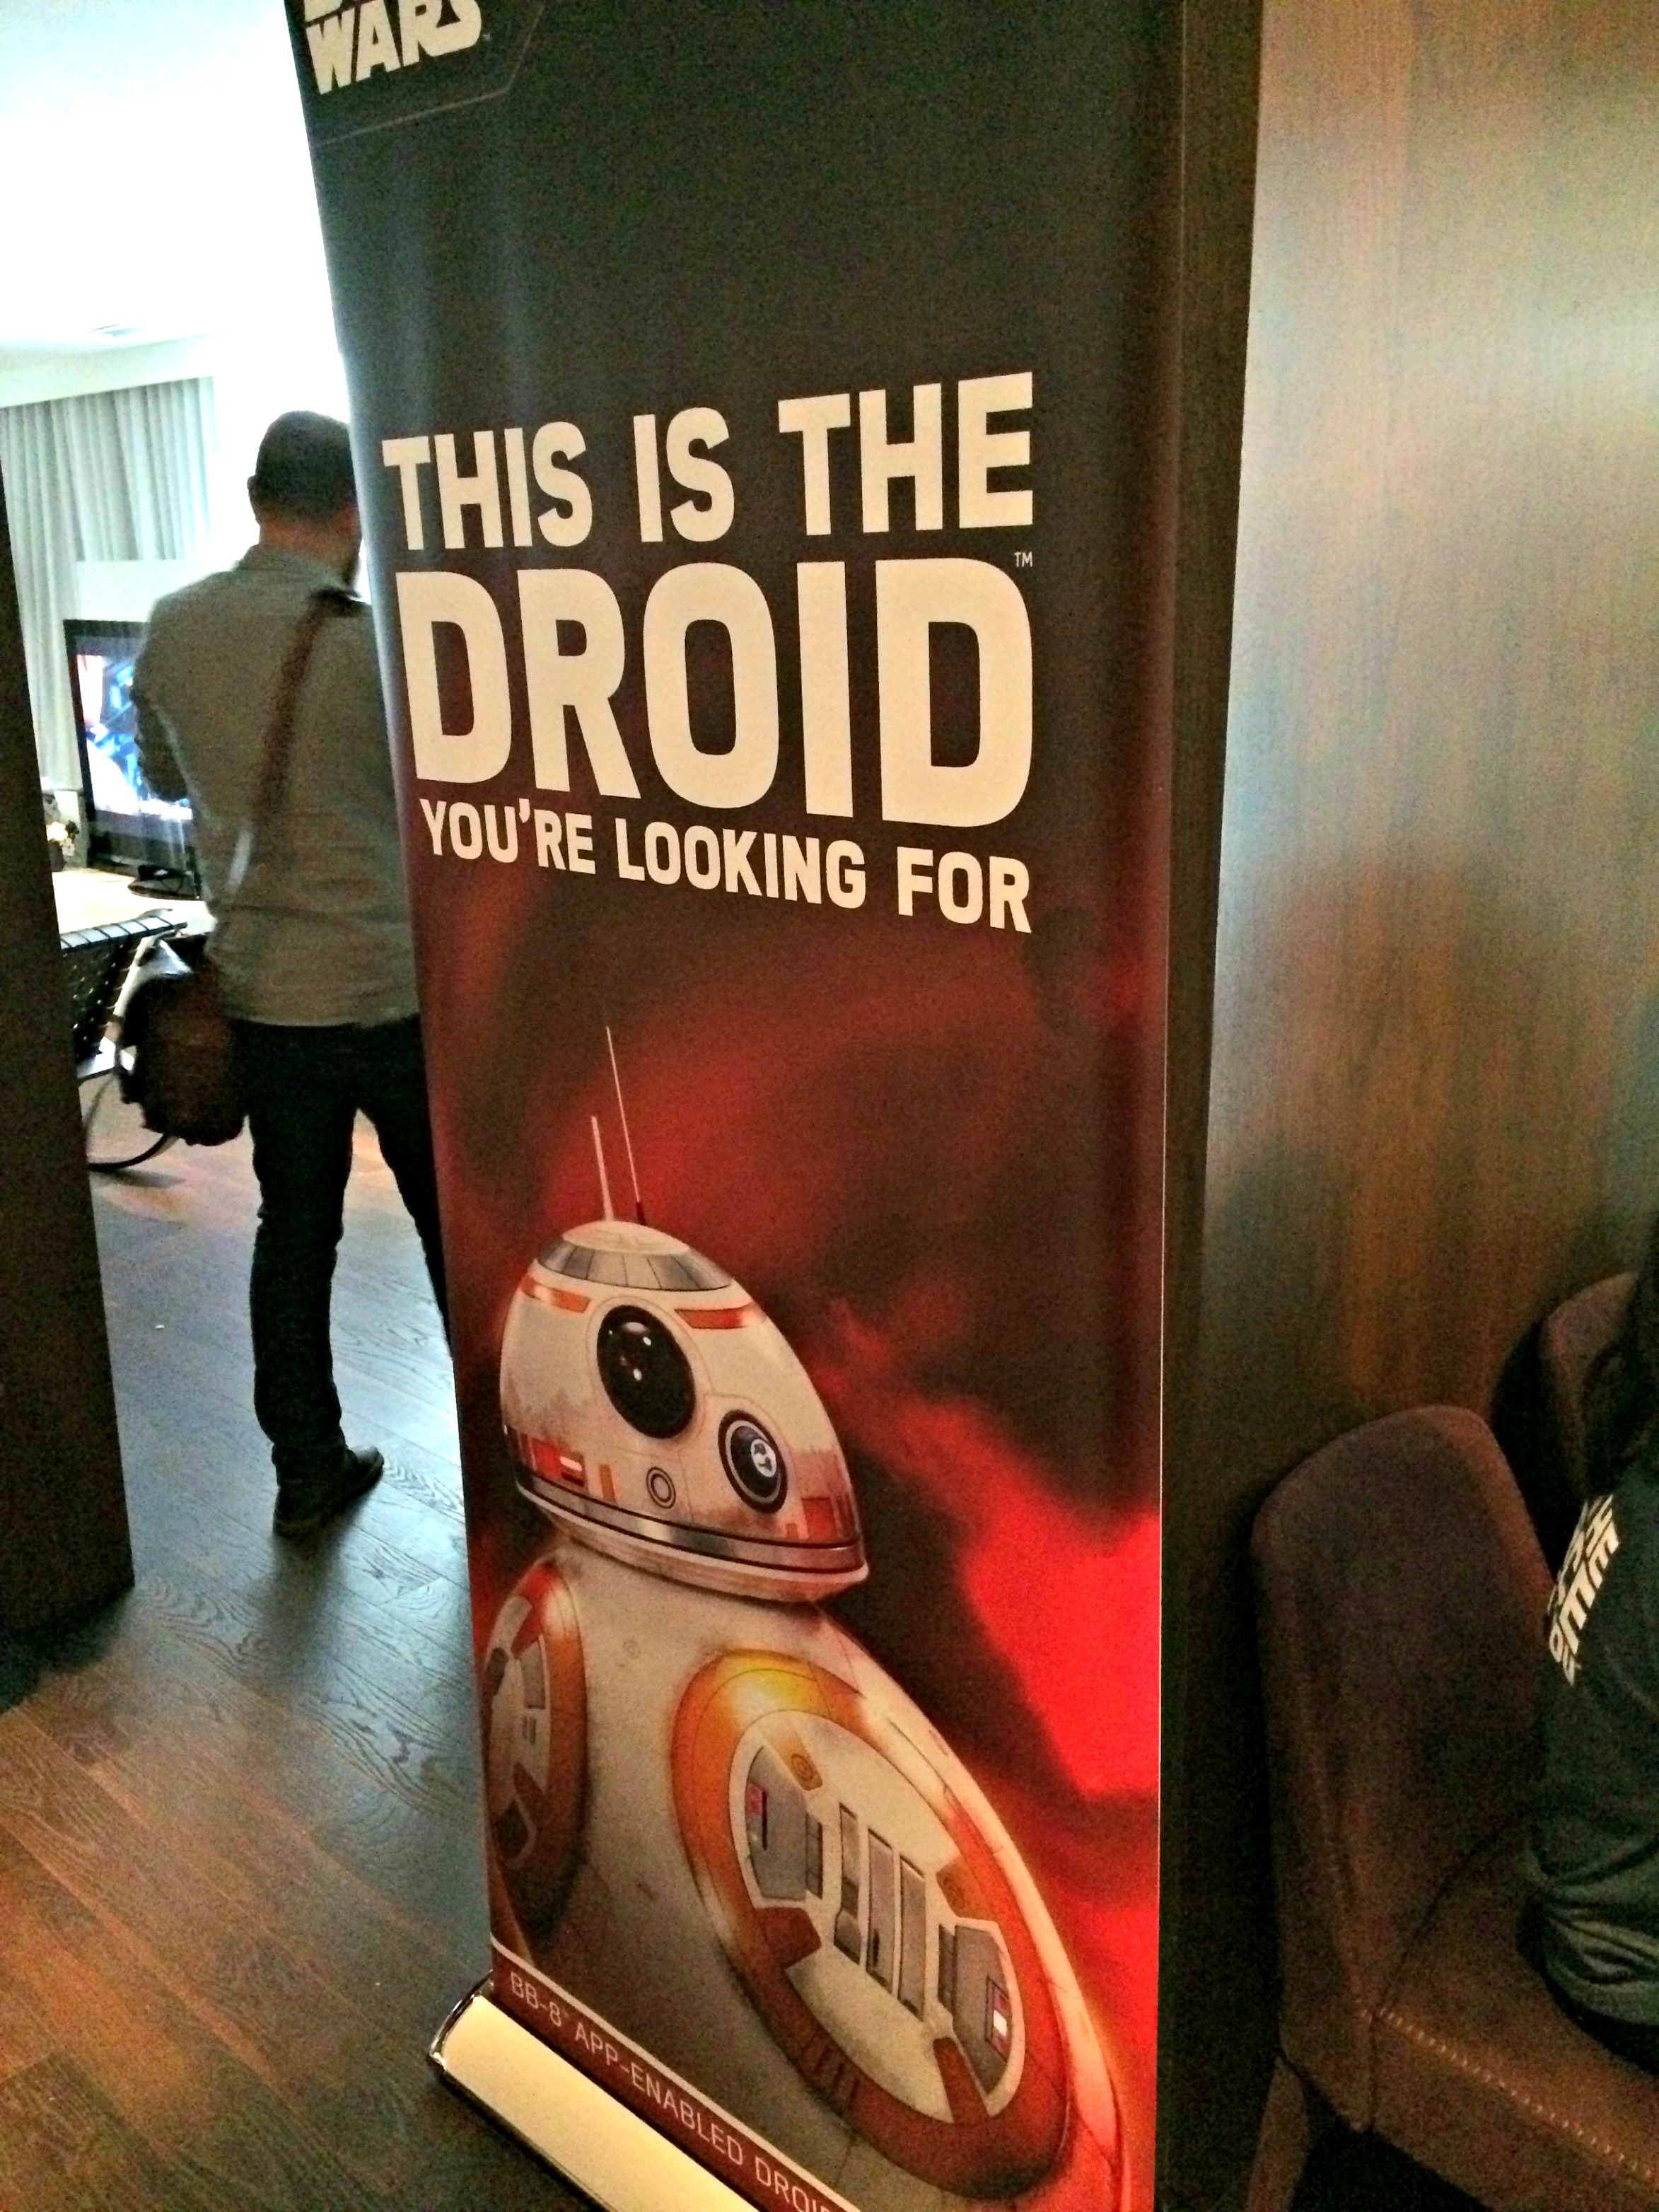 For real, this is the droid I'm looking for. The Force Band by Sphero and Special Edition Battle-Worn BB-8 are must-haves! Read the full review @ GagenGirls.com